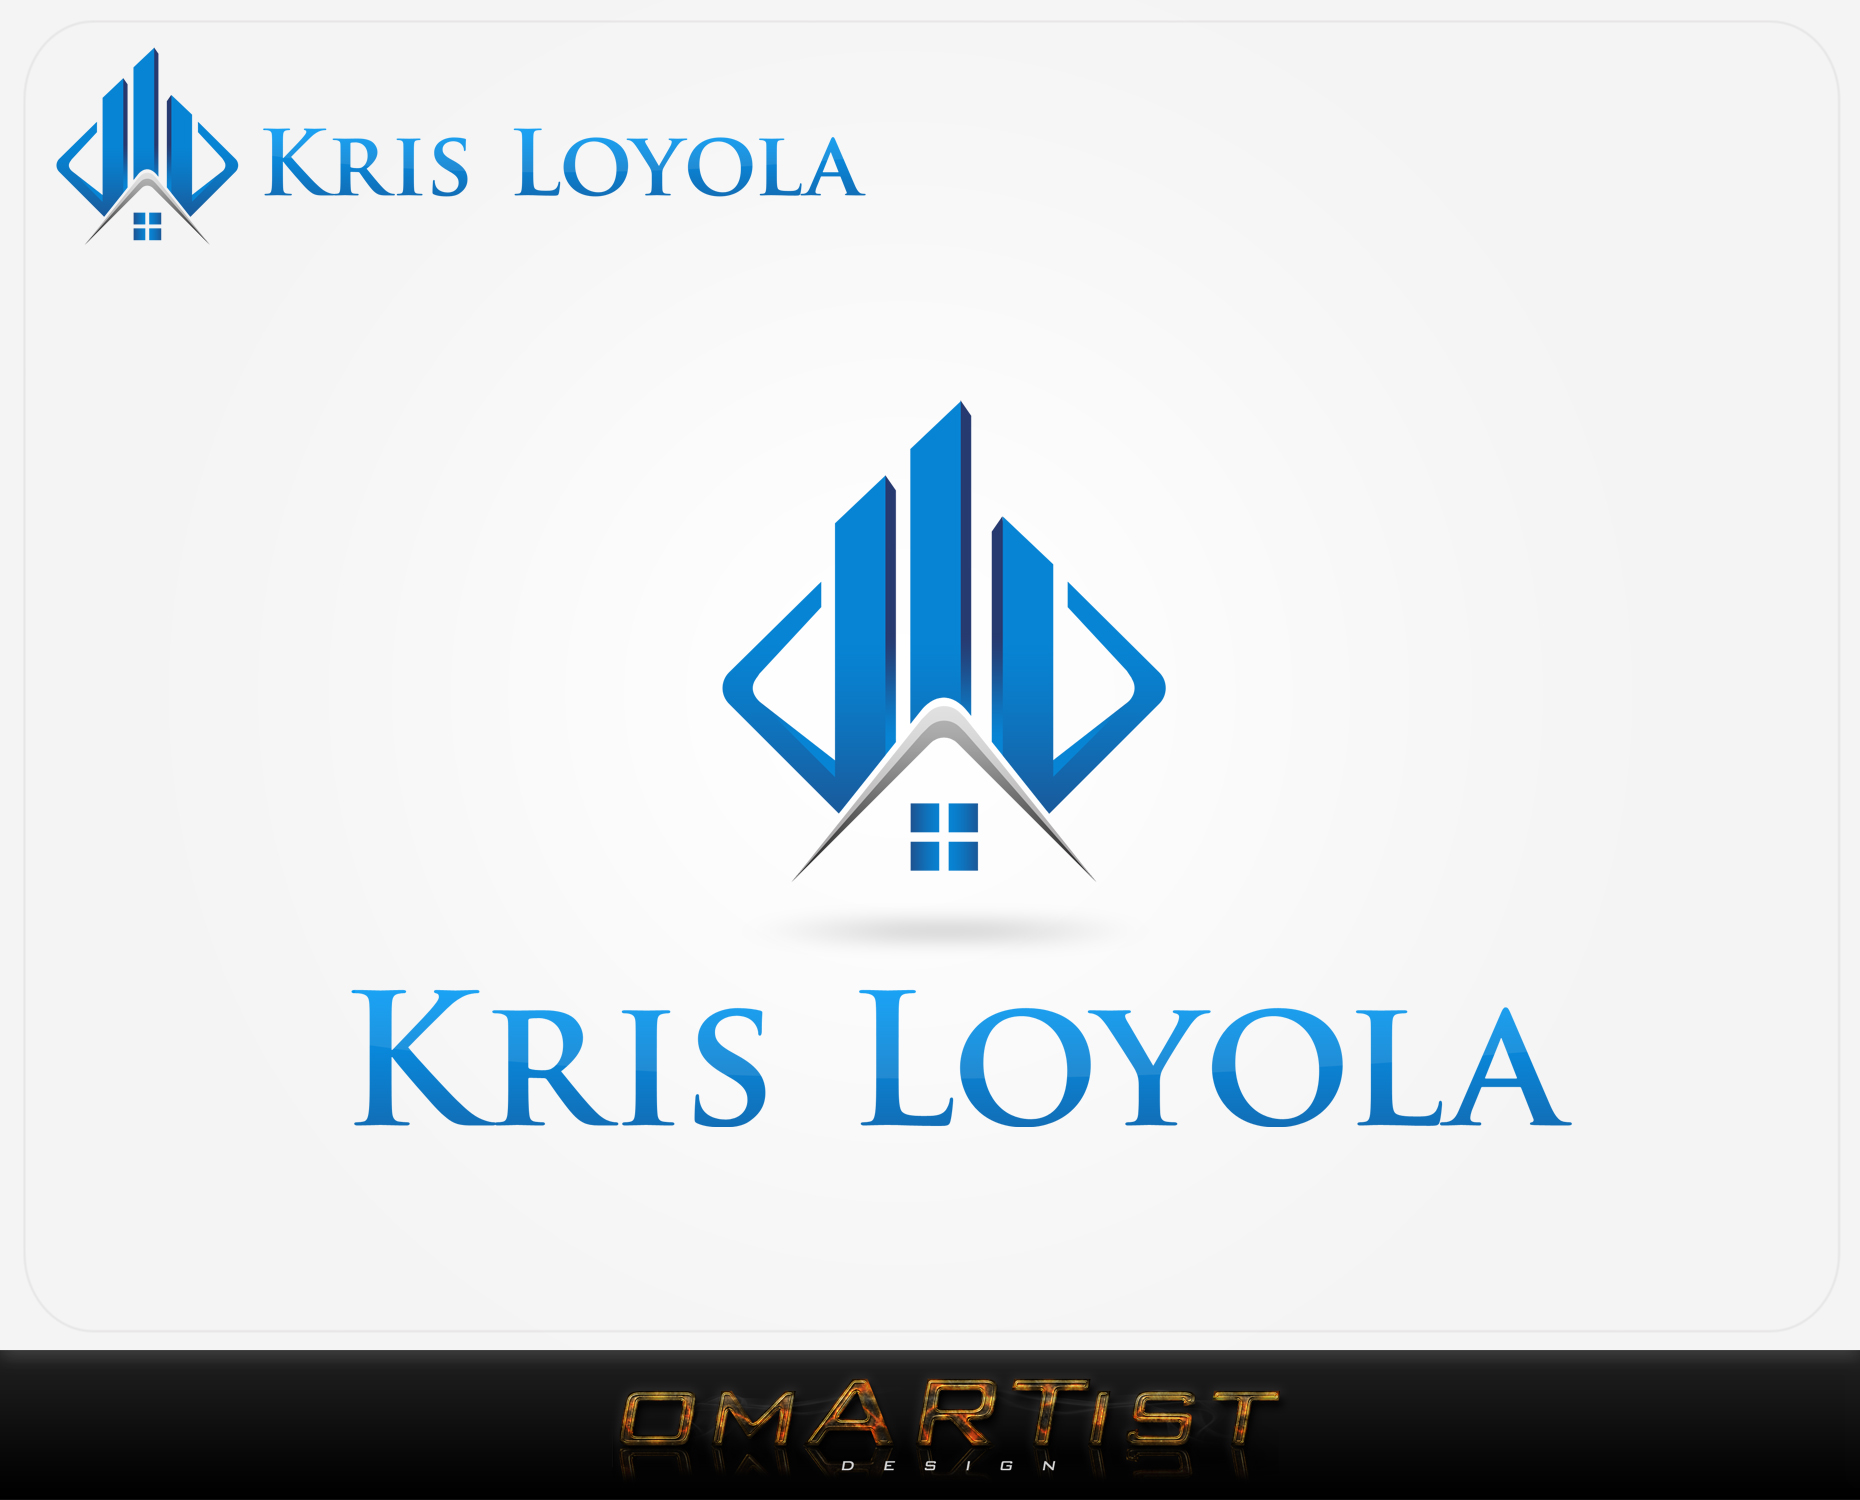 Logo Design by omARTist - Entry No. 106 in the Logo Design Contest Kris Loyola Logo Design.